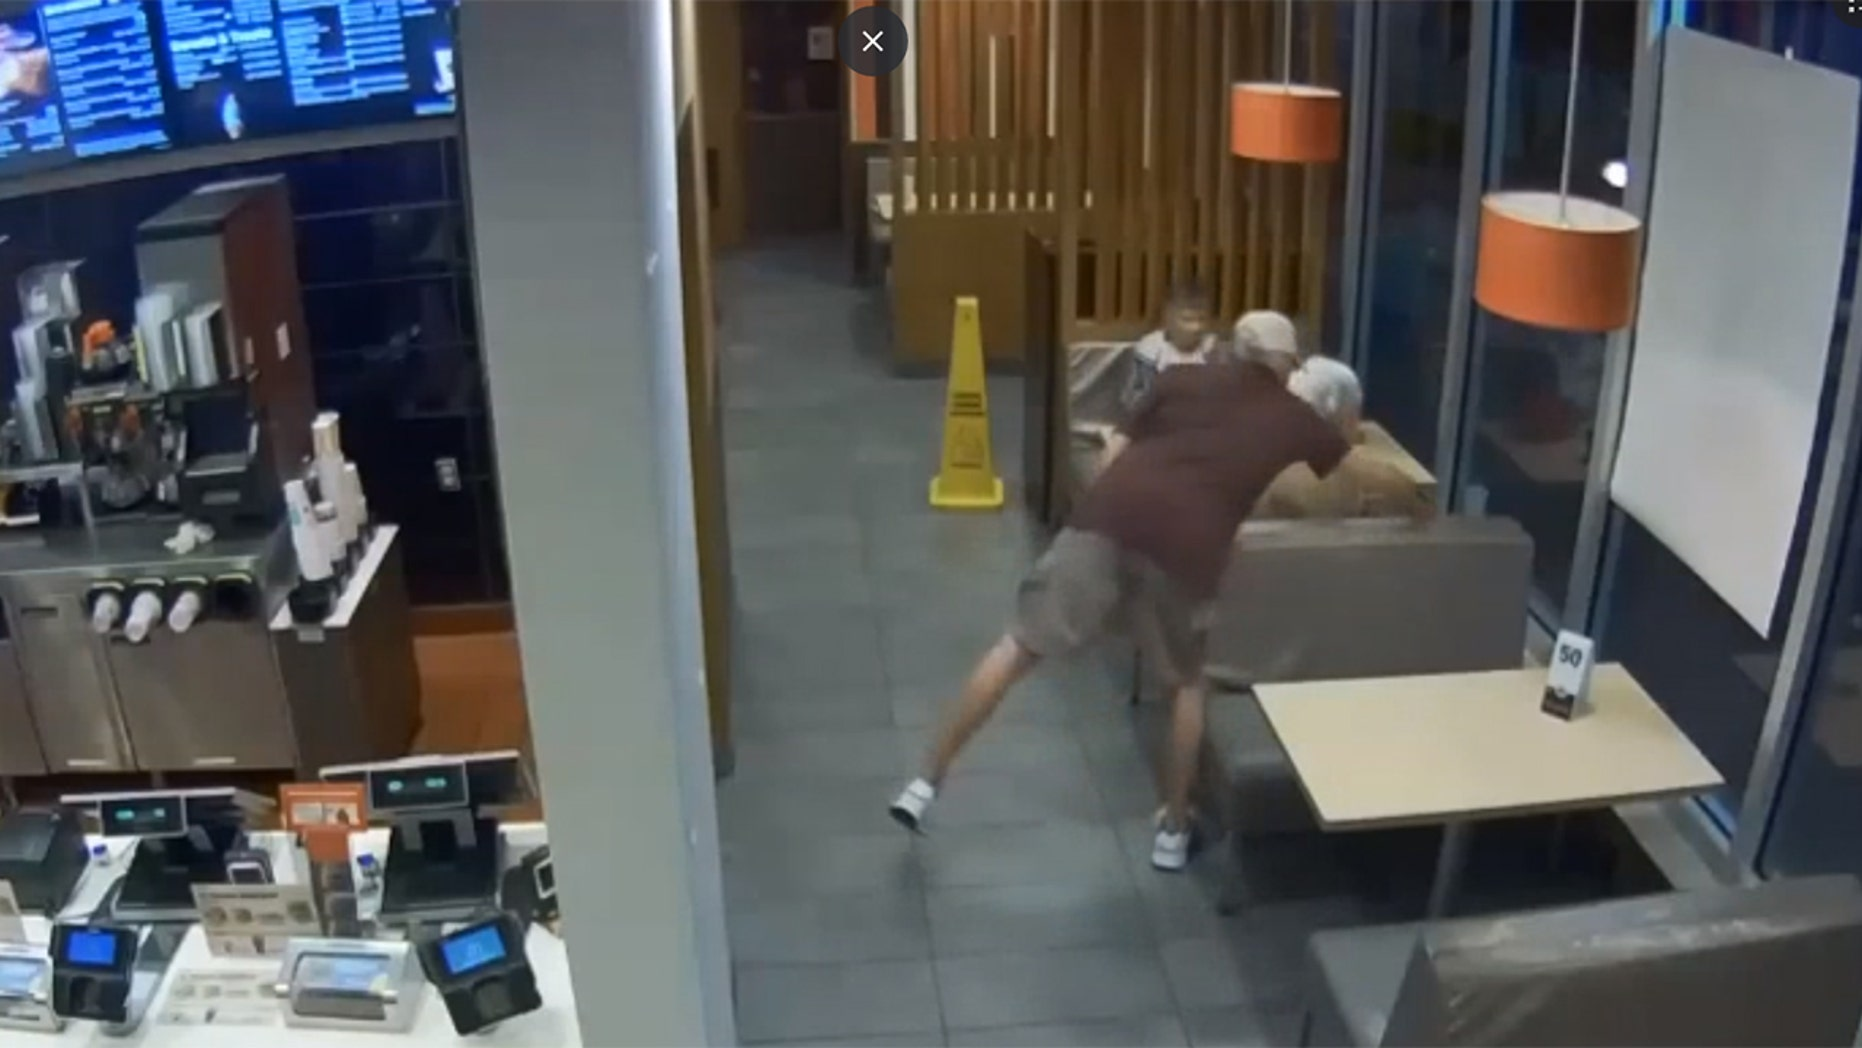 Man caught on camera snatching purse at McDonald's in Okeechobee